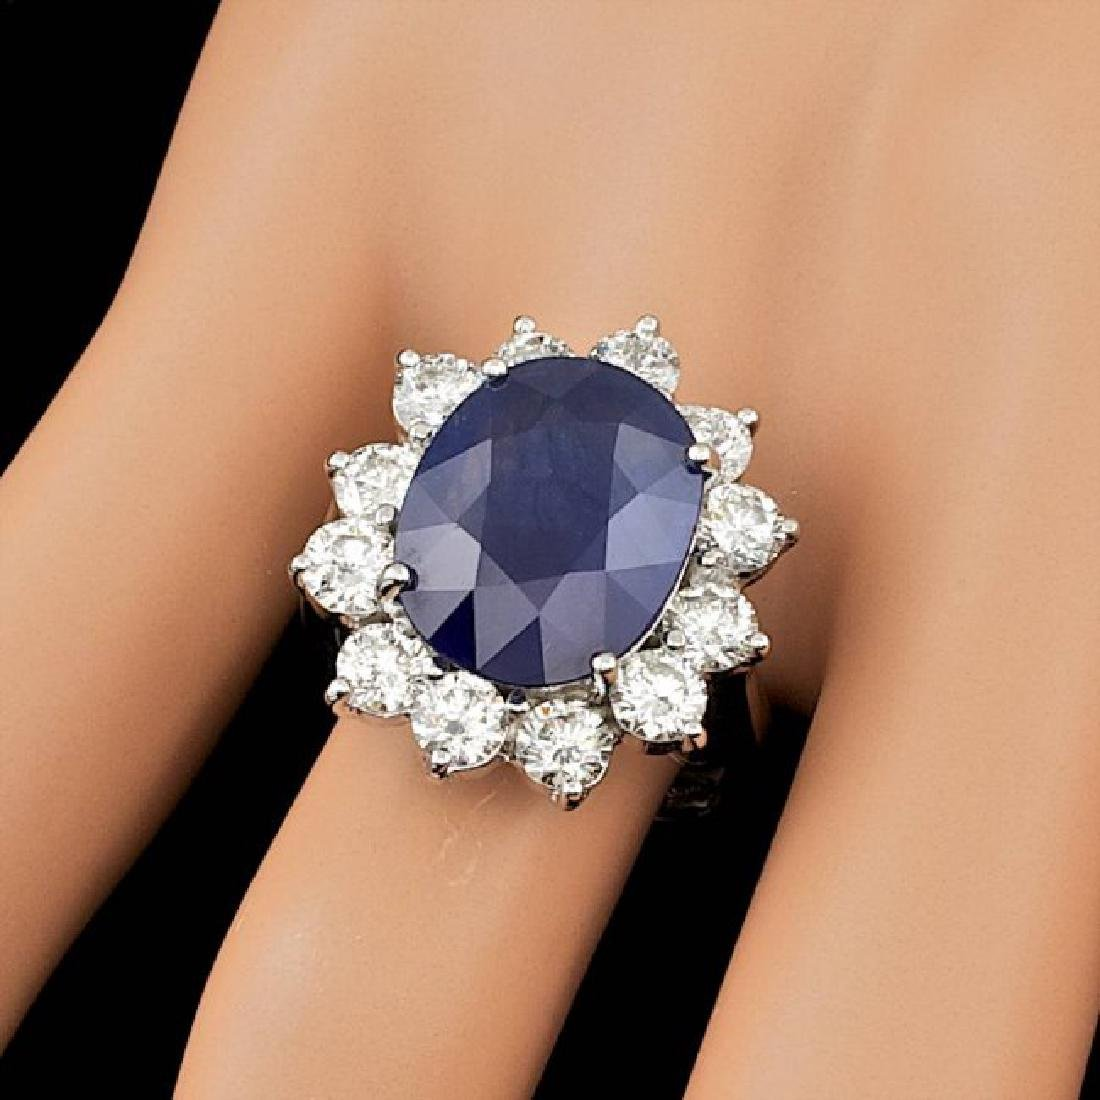 14k Gold 8.50ct Sapphire 2.50ct Diamond Ring - 4